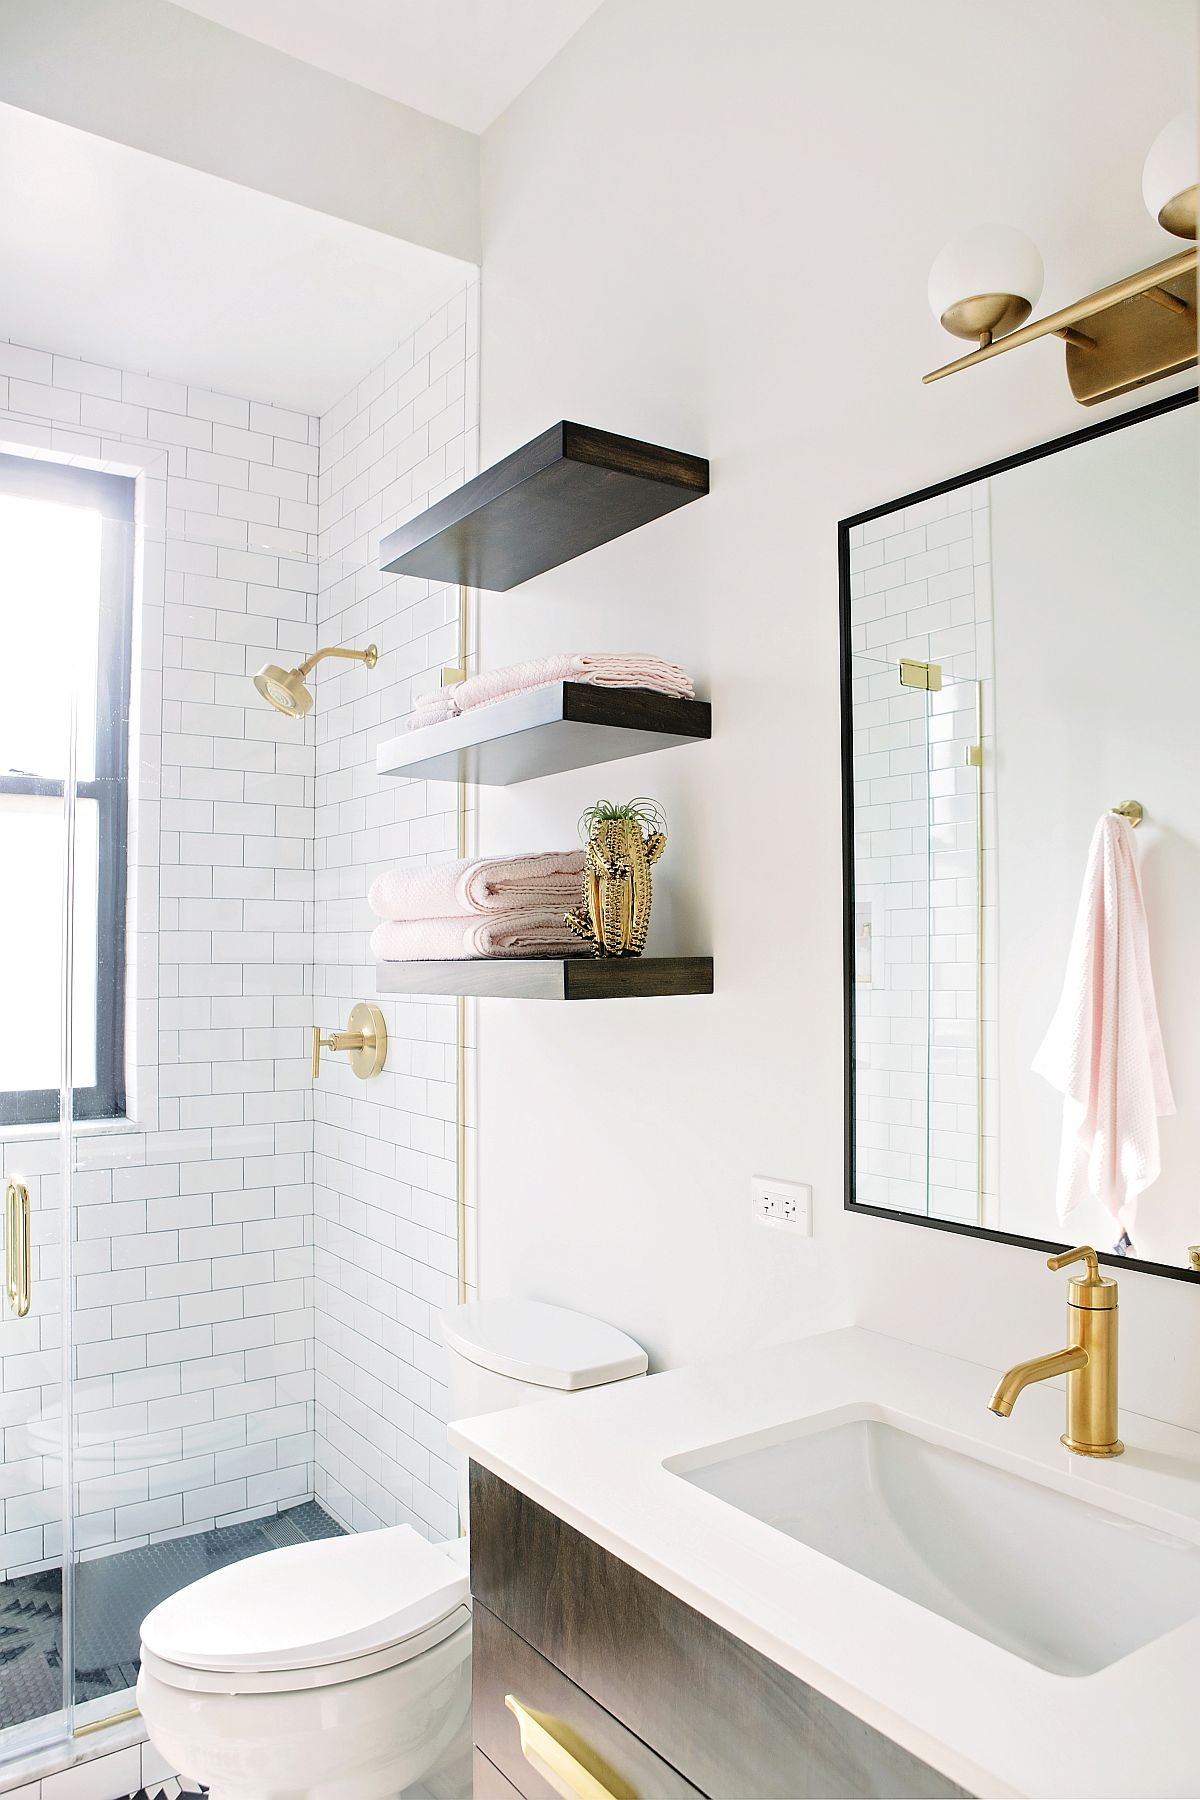 Guest bathroom in white with pops of black and gold tha bring contrast